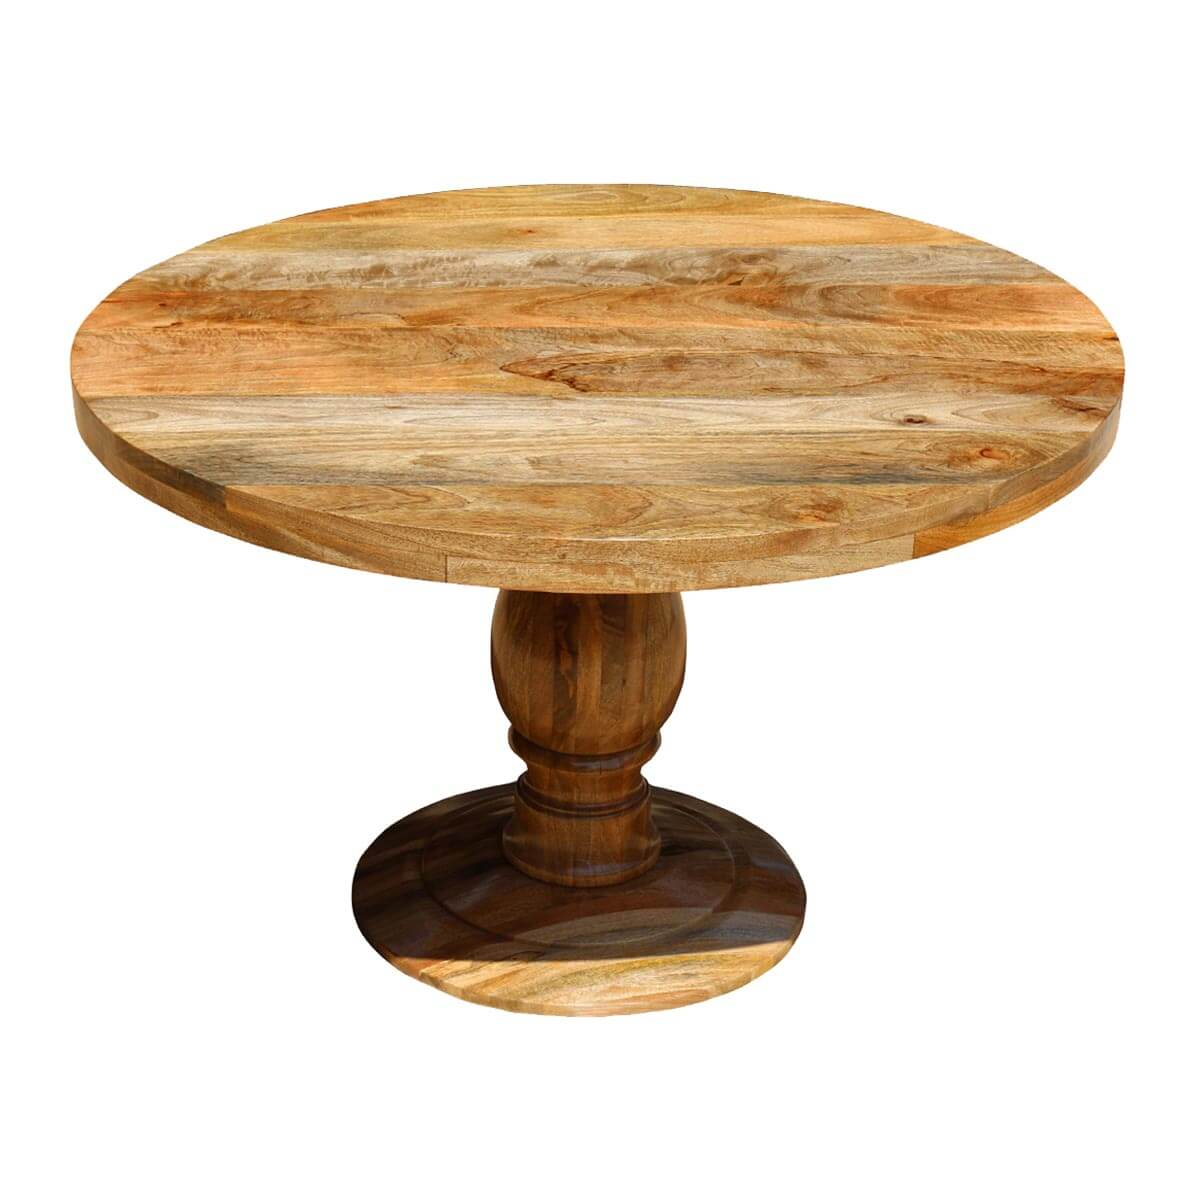 "rustic mango wood "" round pedestal dining table. rustic mango wood  round pedestal dining table"